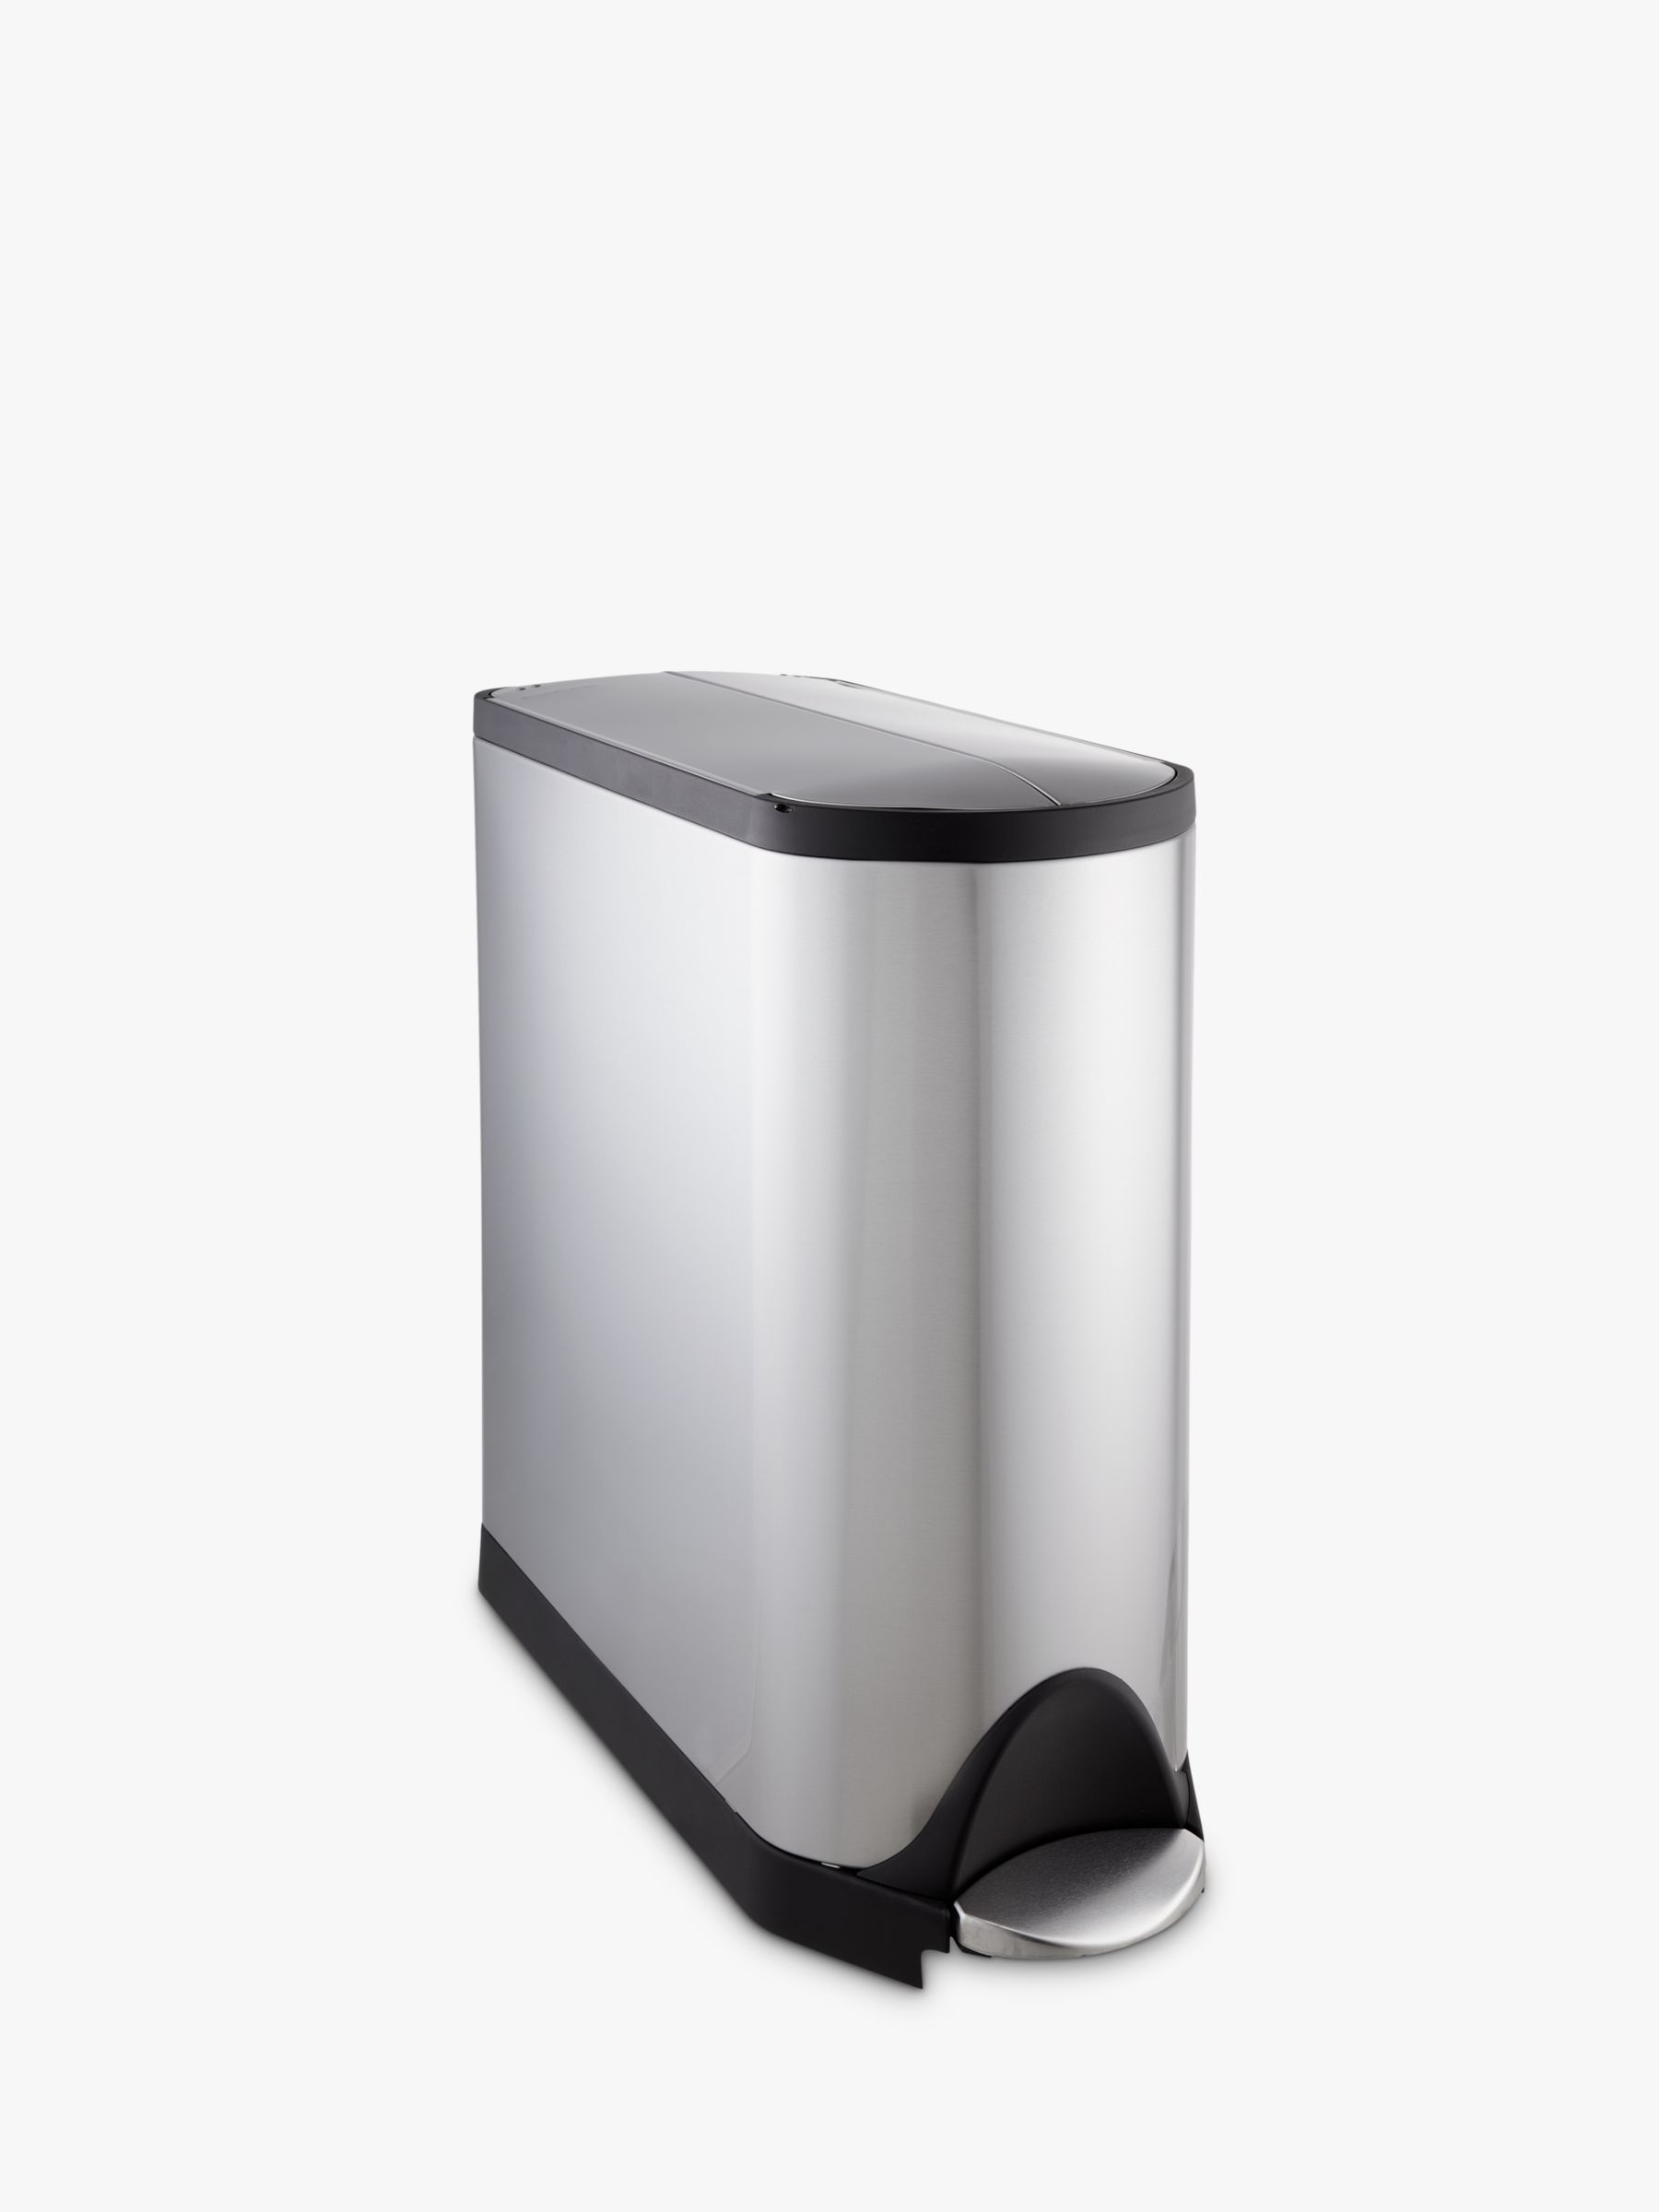 Simplehuman simplehuman Butterfly Pedal Bin, Fingerprint Proof Brushed Stainless Steel, 45L